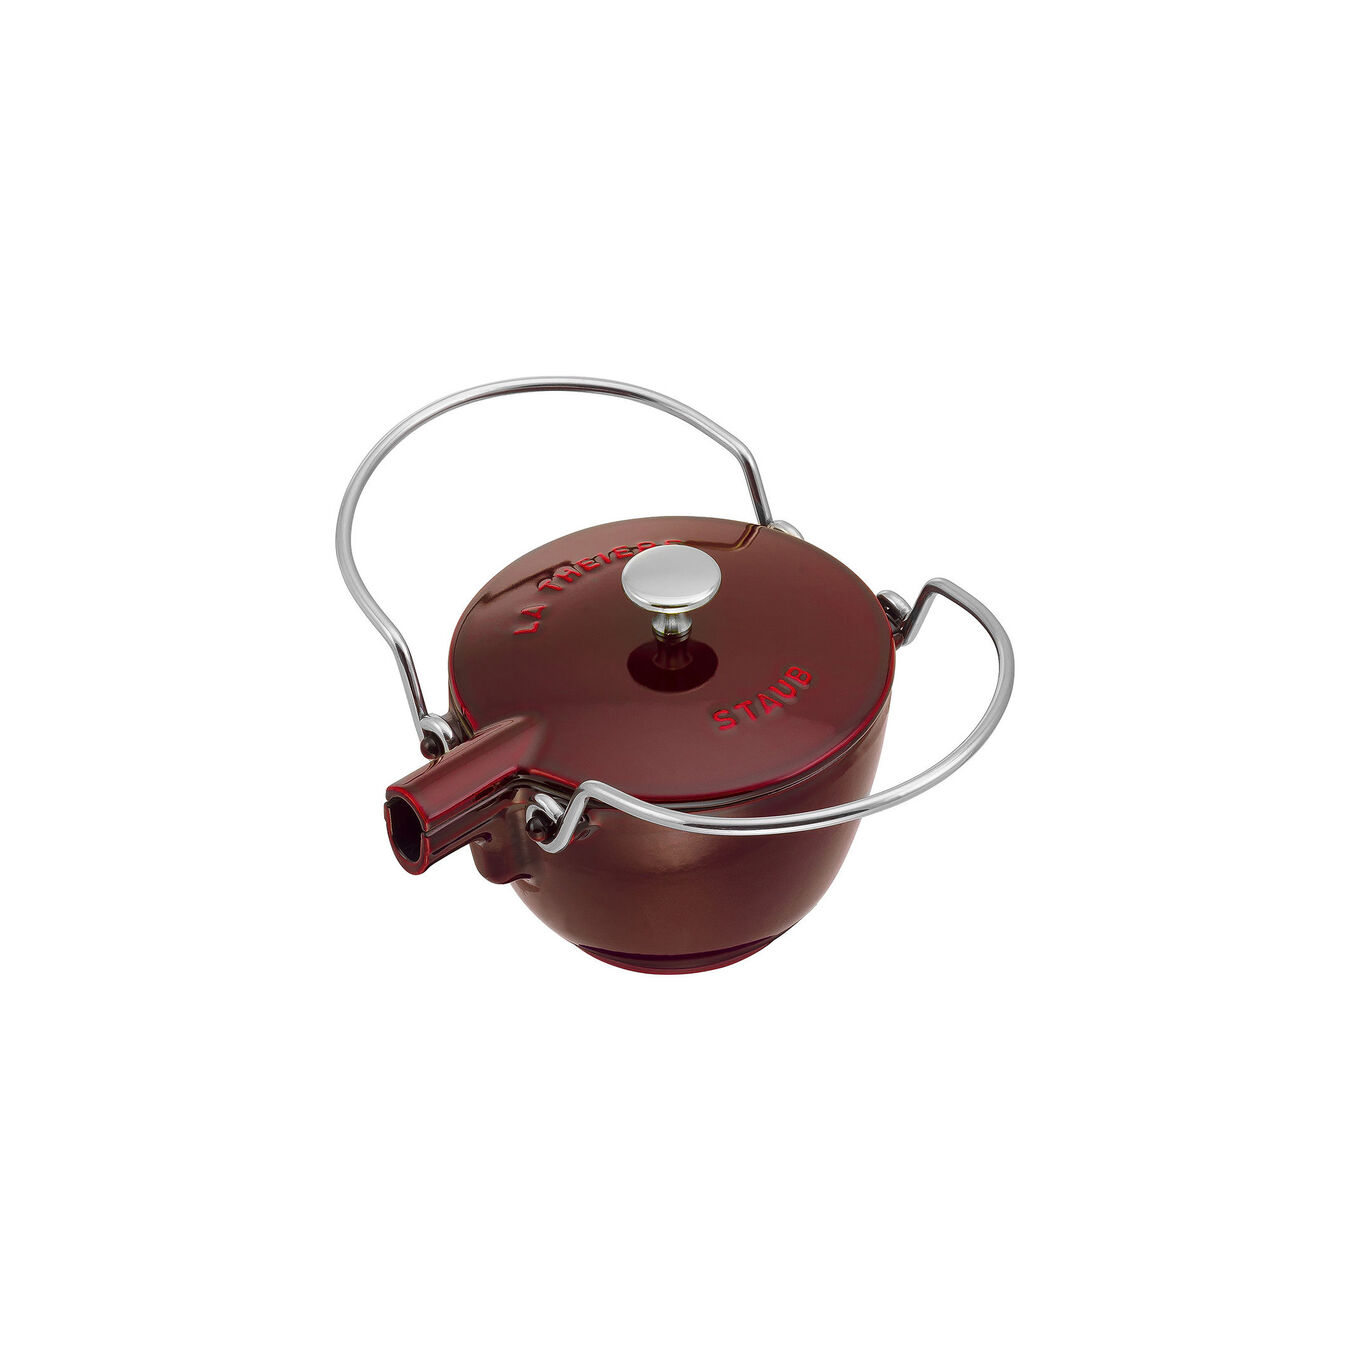 1-qt Round Tea Kettle - Grenadine,,large 2